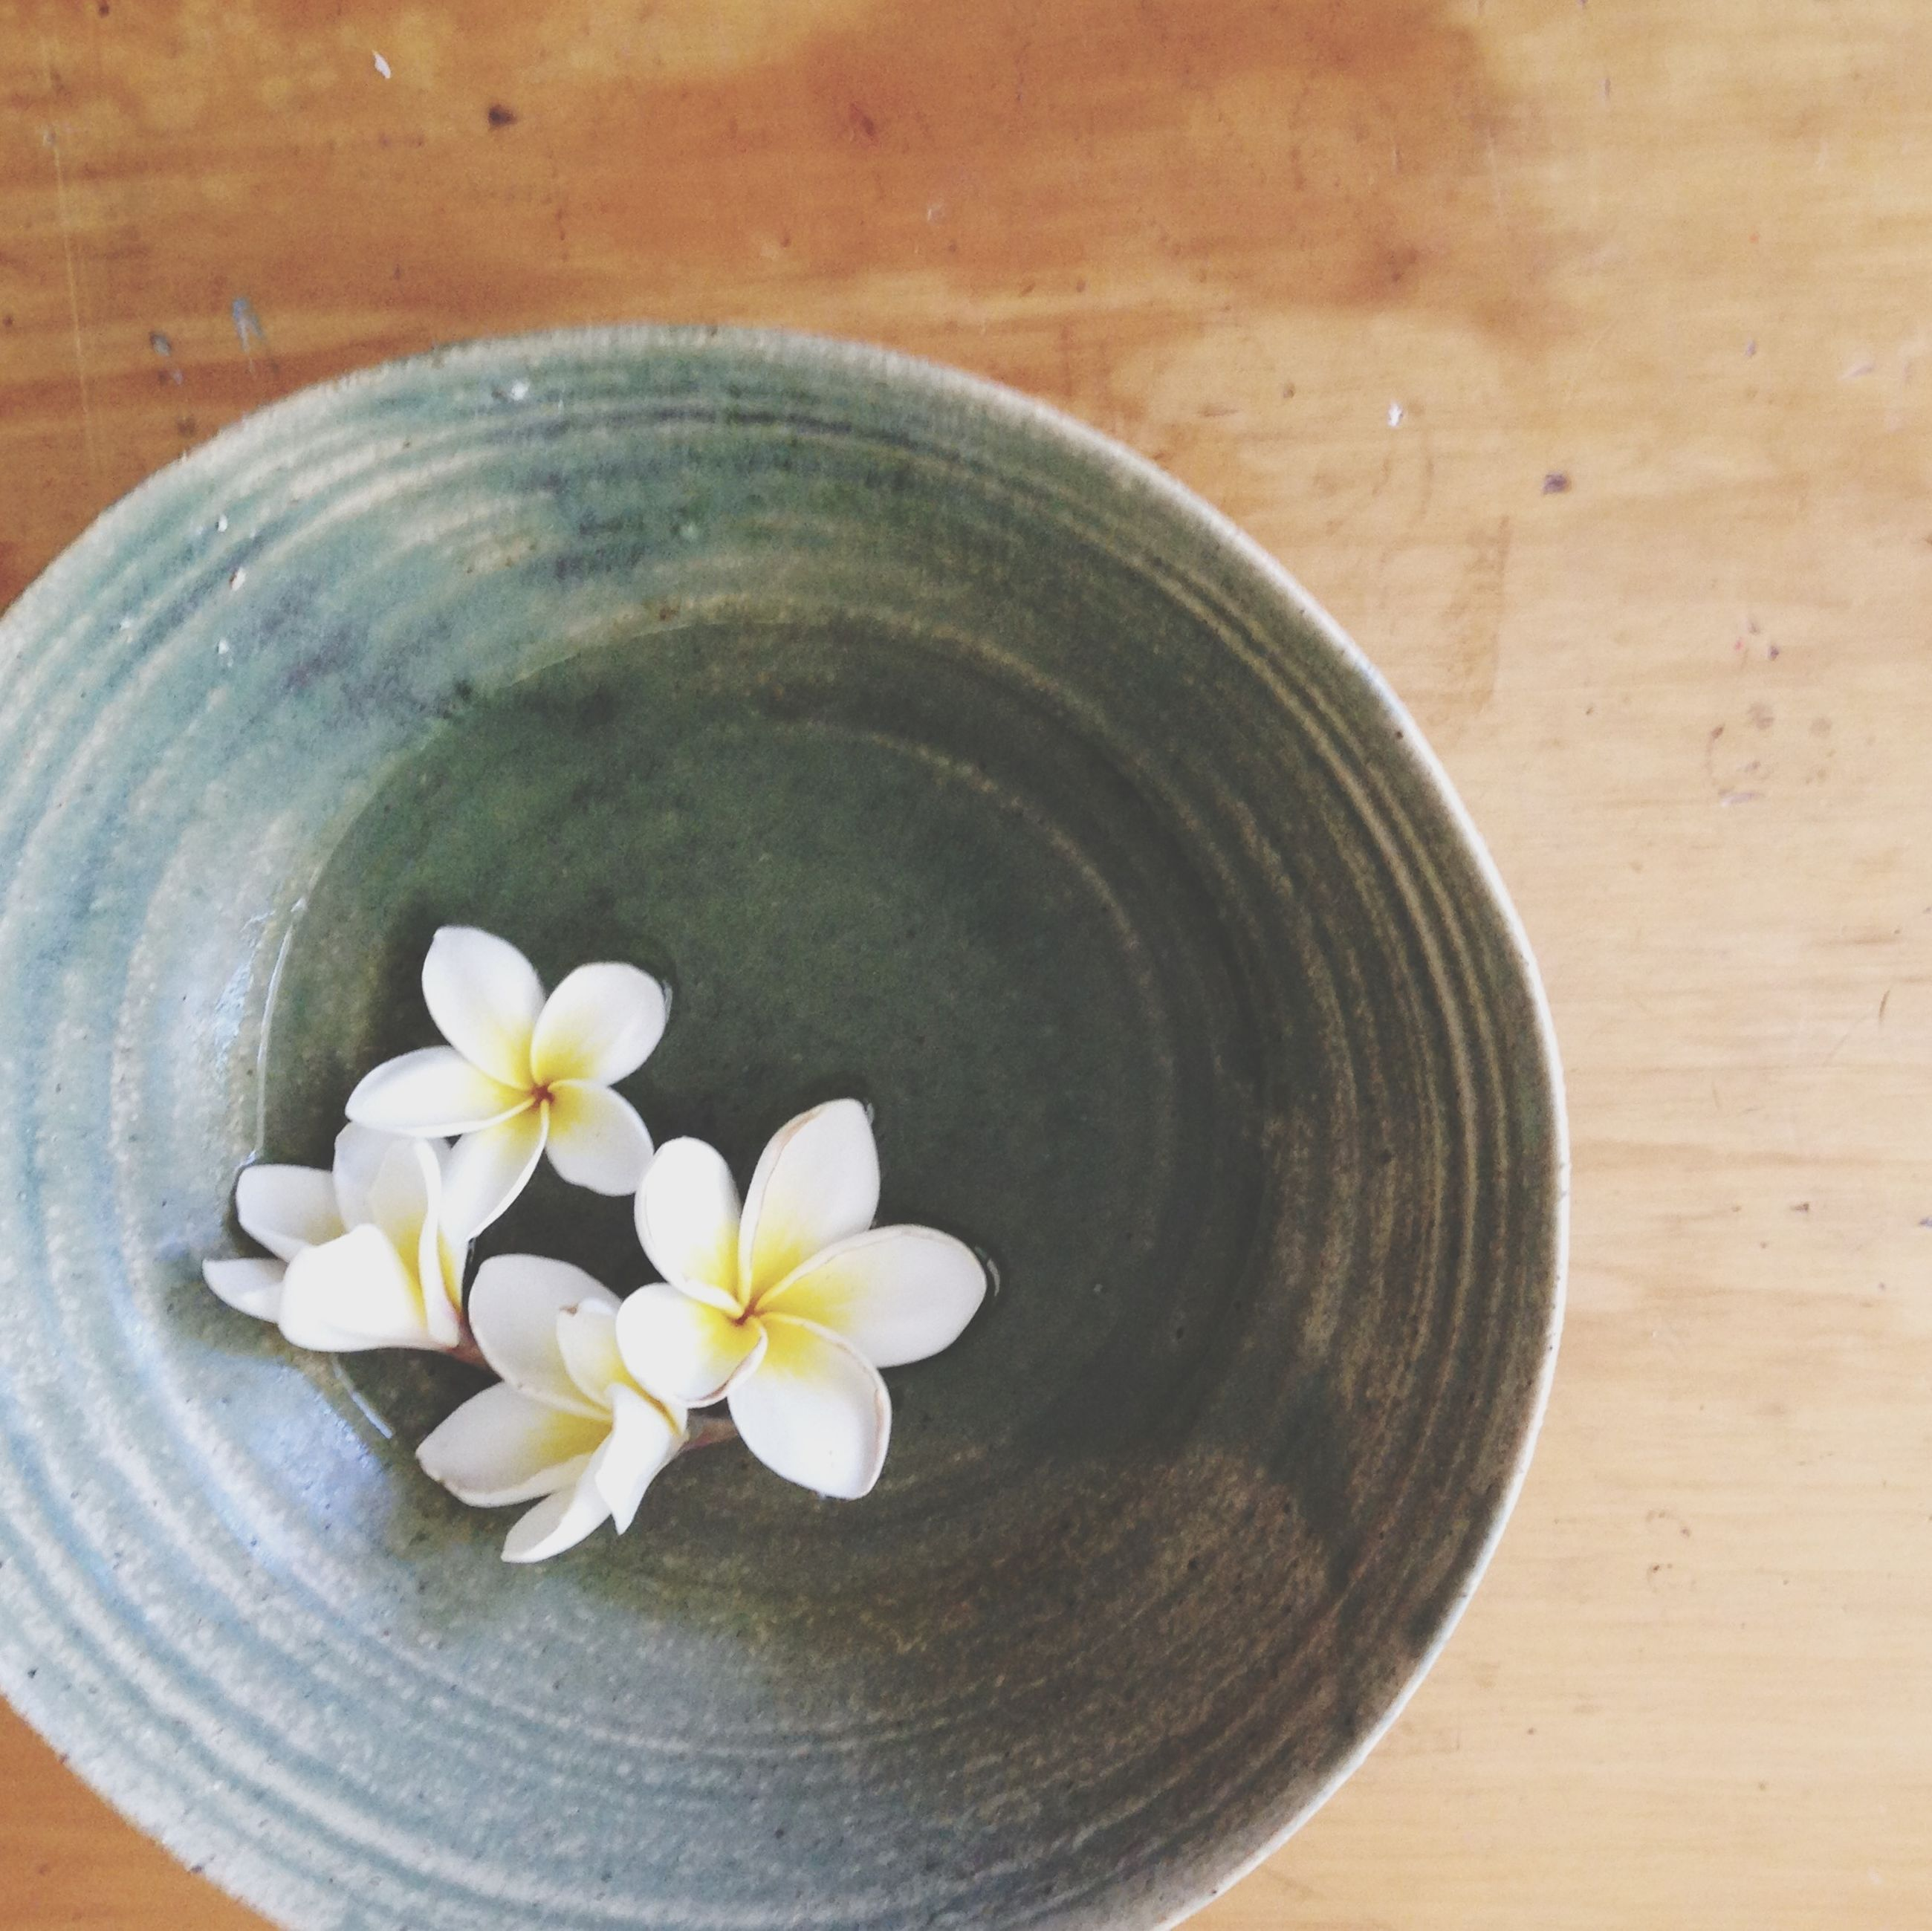 indoors, freshness, table, still life, directly above, high angle view, flower, food and drink, close-up, wood - material, bowl, fragility, no people, healthy eating, circle, white color, wooden, overhead view, food, vase